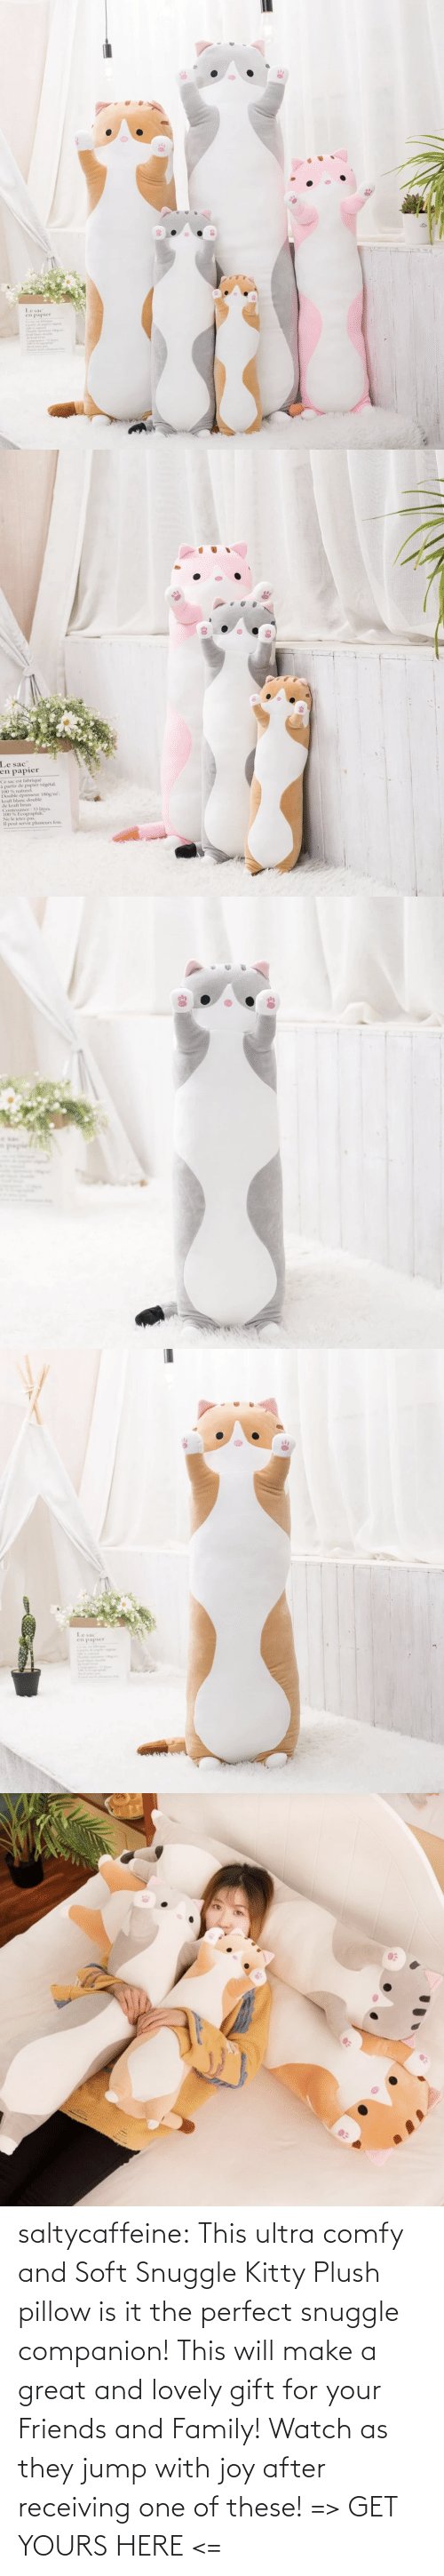 Family, Friends, and Tumblr: saltycaffeine: This ultra comfy and Soft Snuggle Kitty Plush pillow is it the perfect snuggle companion! This will make a great and lovely gift for your Friends and Family! Watch as they jump with joy after receiving one of these! => GET YOURS HERE <=